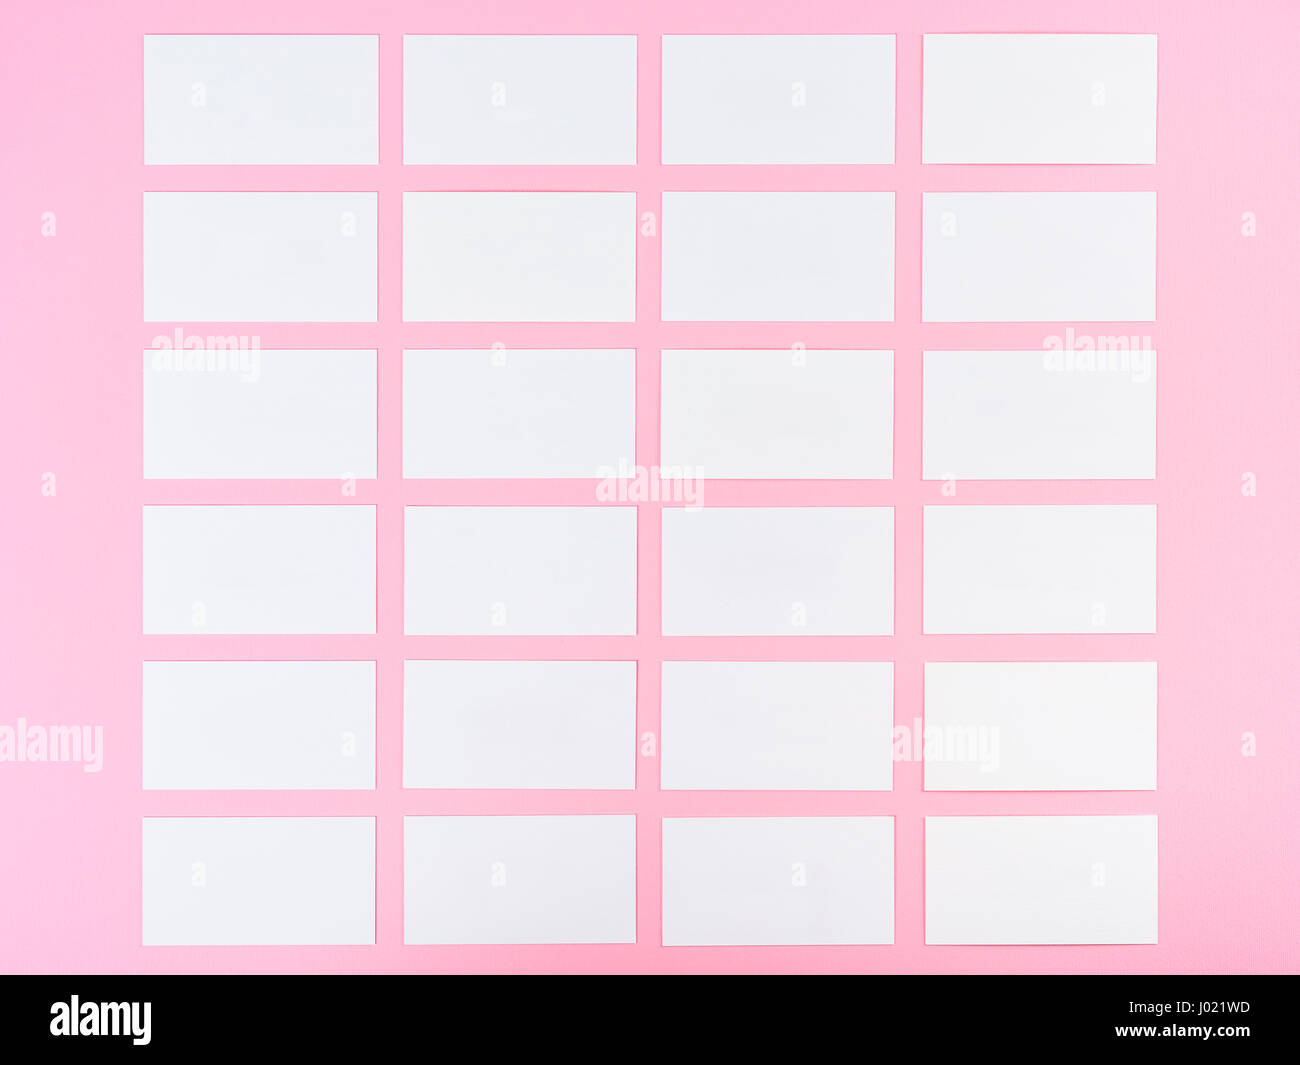 White blank business cards on pink background with fine paper white blank business cards on pink background with fine paper texture reheart Image collections